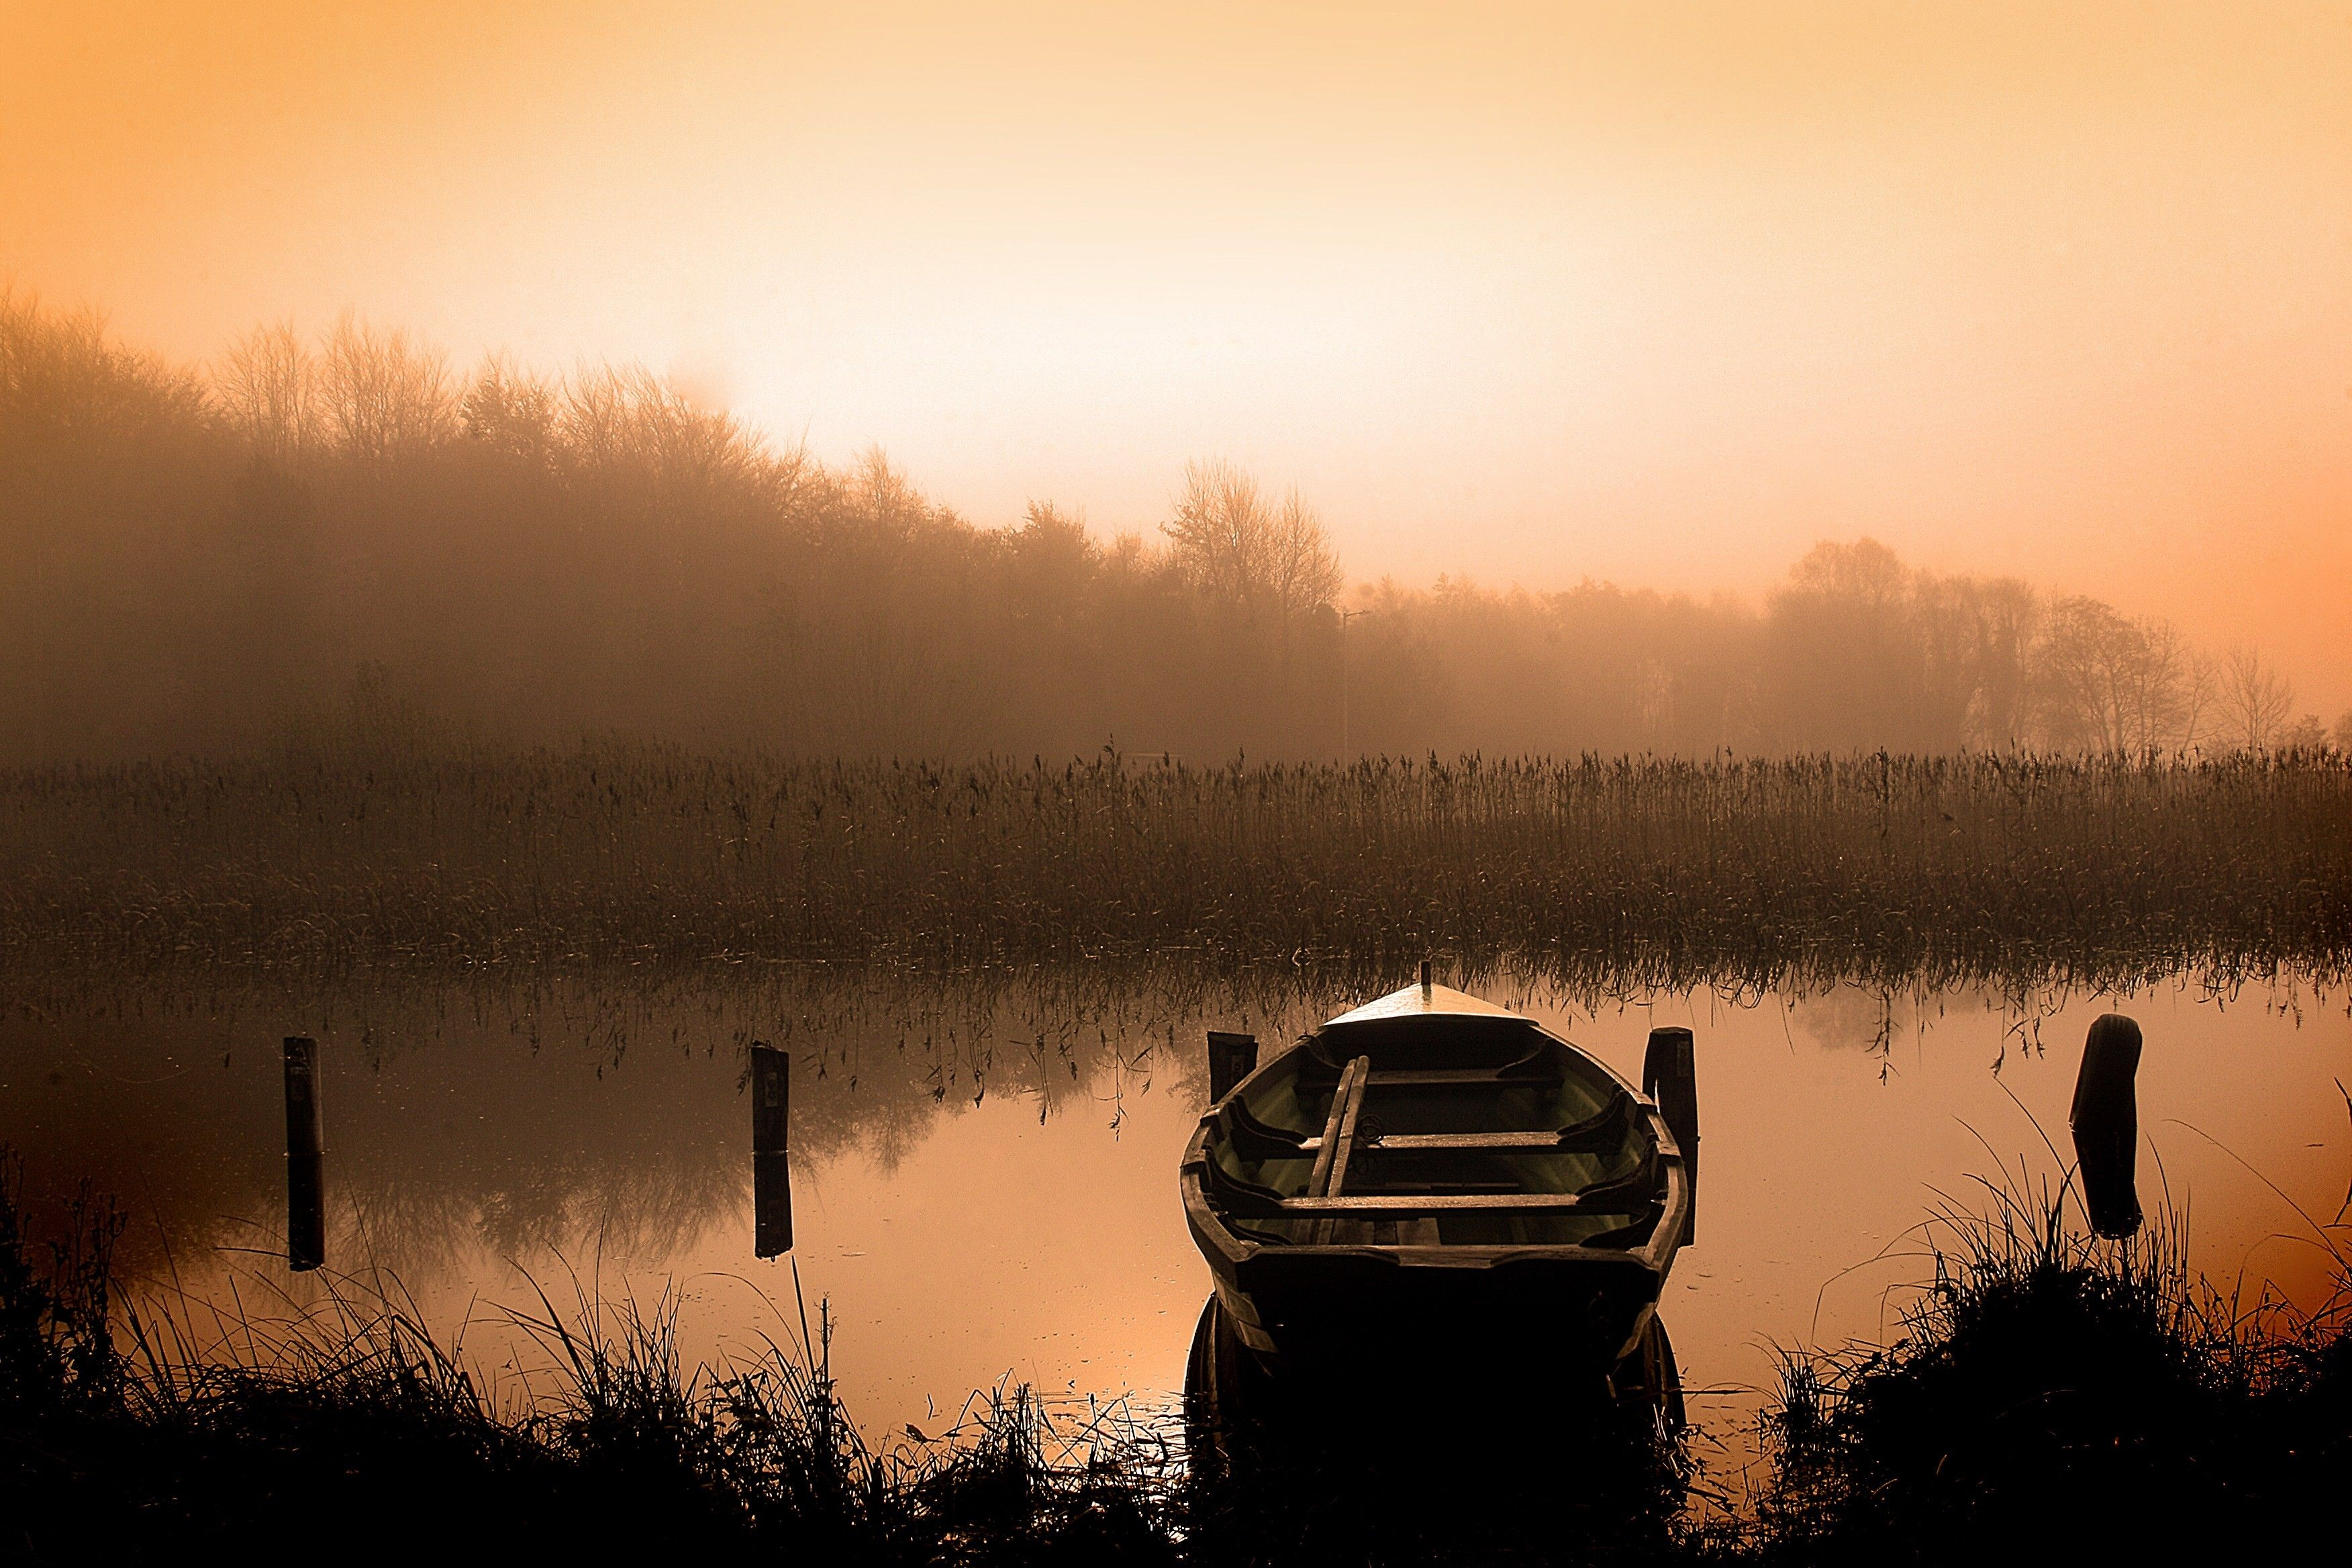 The sun rises over a lake with a rowboat.